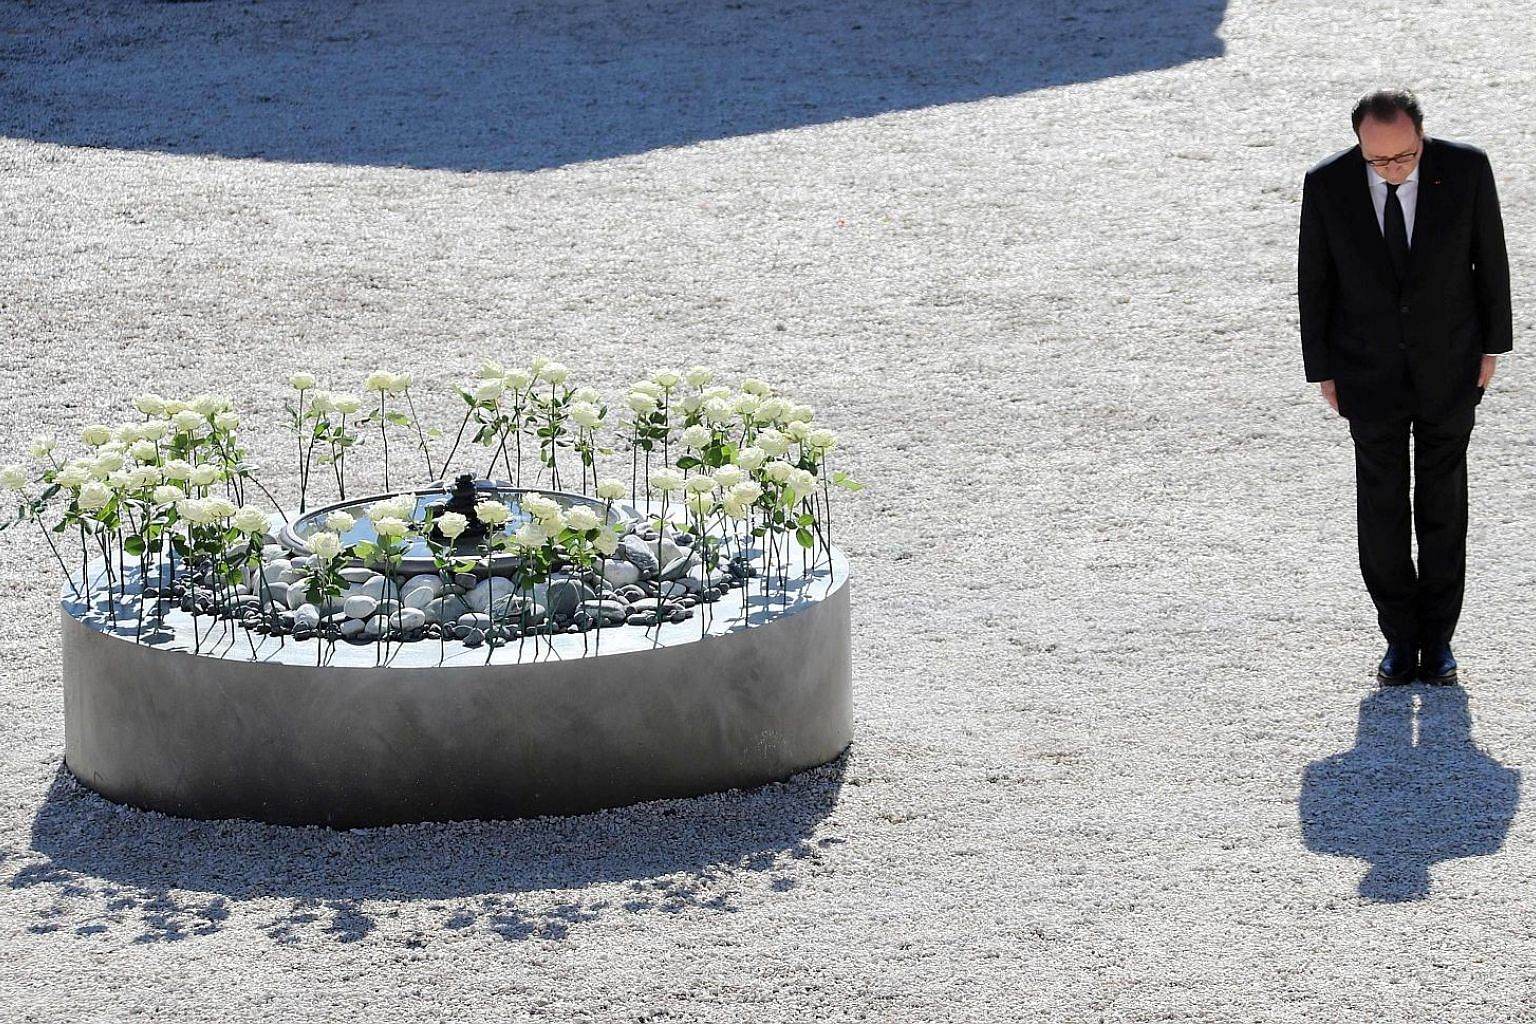 French President Francois Hollande yesterday in Nice during a tribute to the Bastille Day terror attack victims. The white roses represent the 86 people who died on July 14.